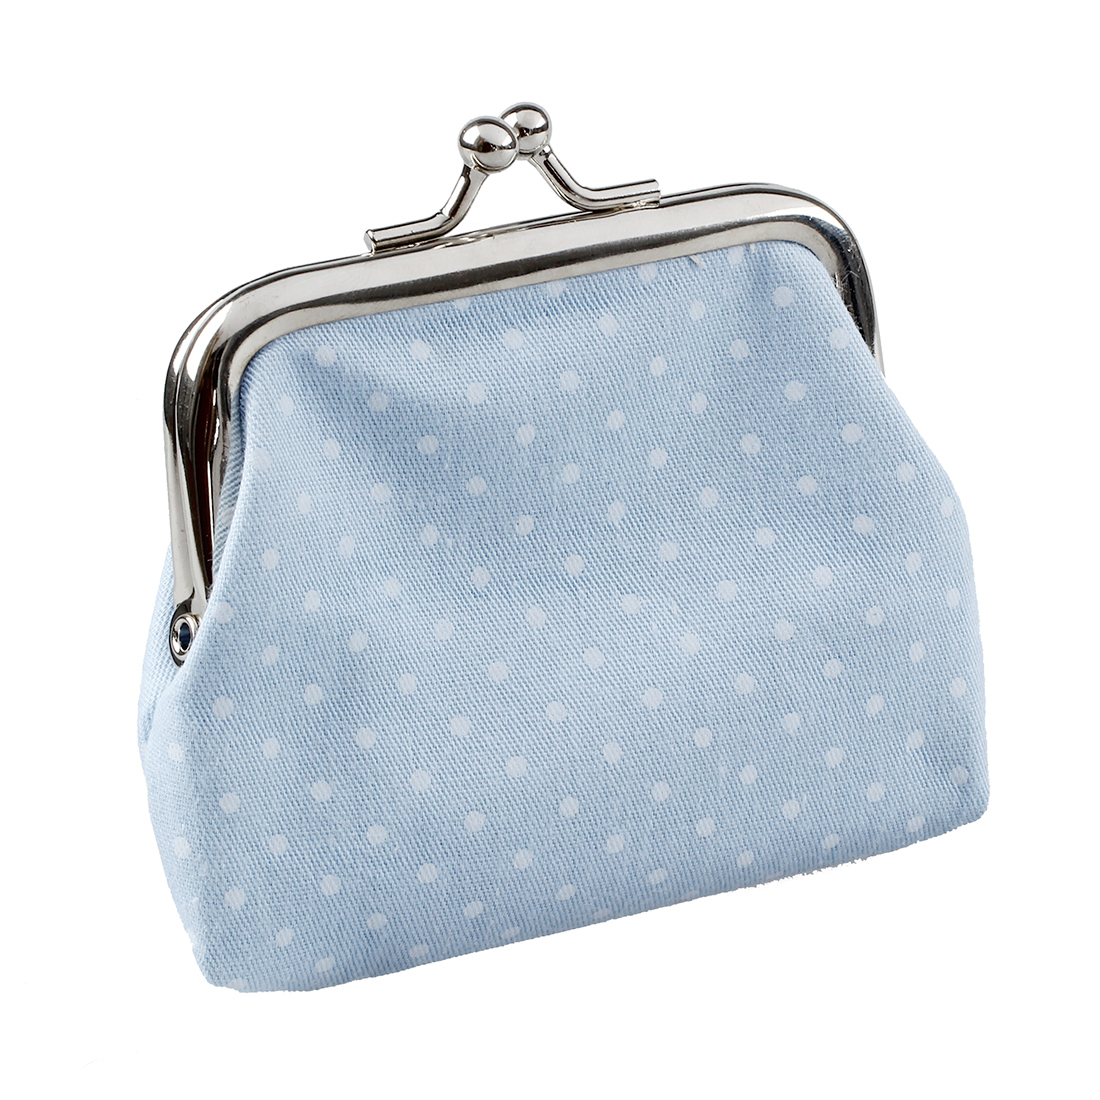 DCOS Popular Cute girls Wallet Clutch Change Purse key/coins bag Mini Handbag Pouch